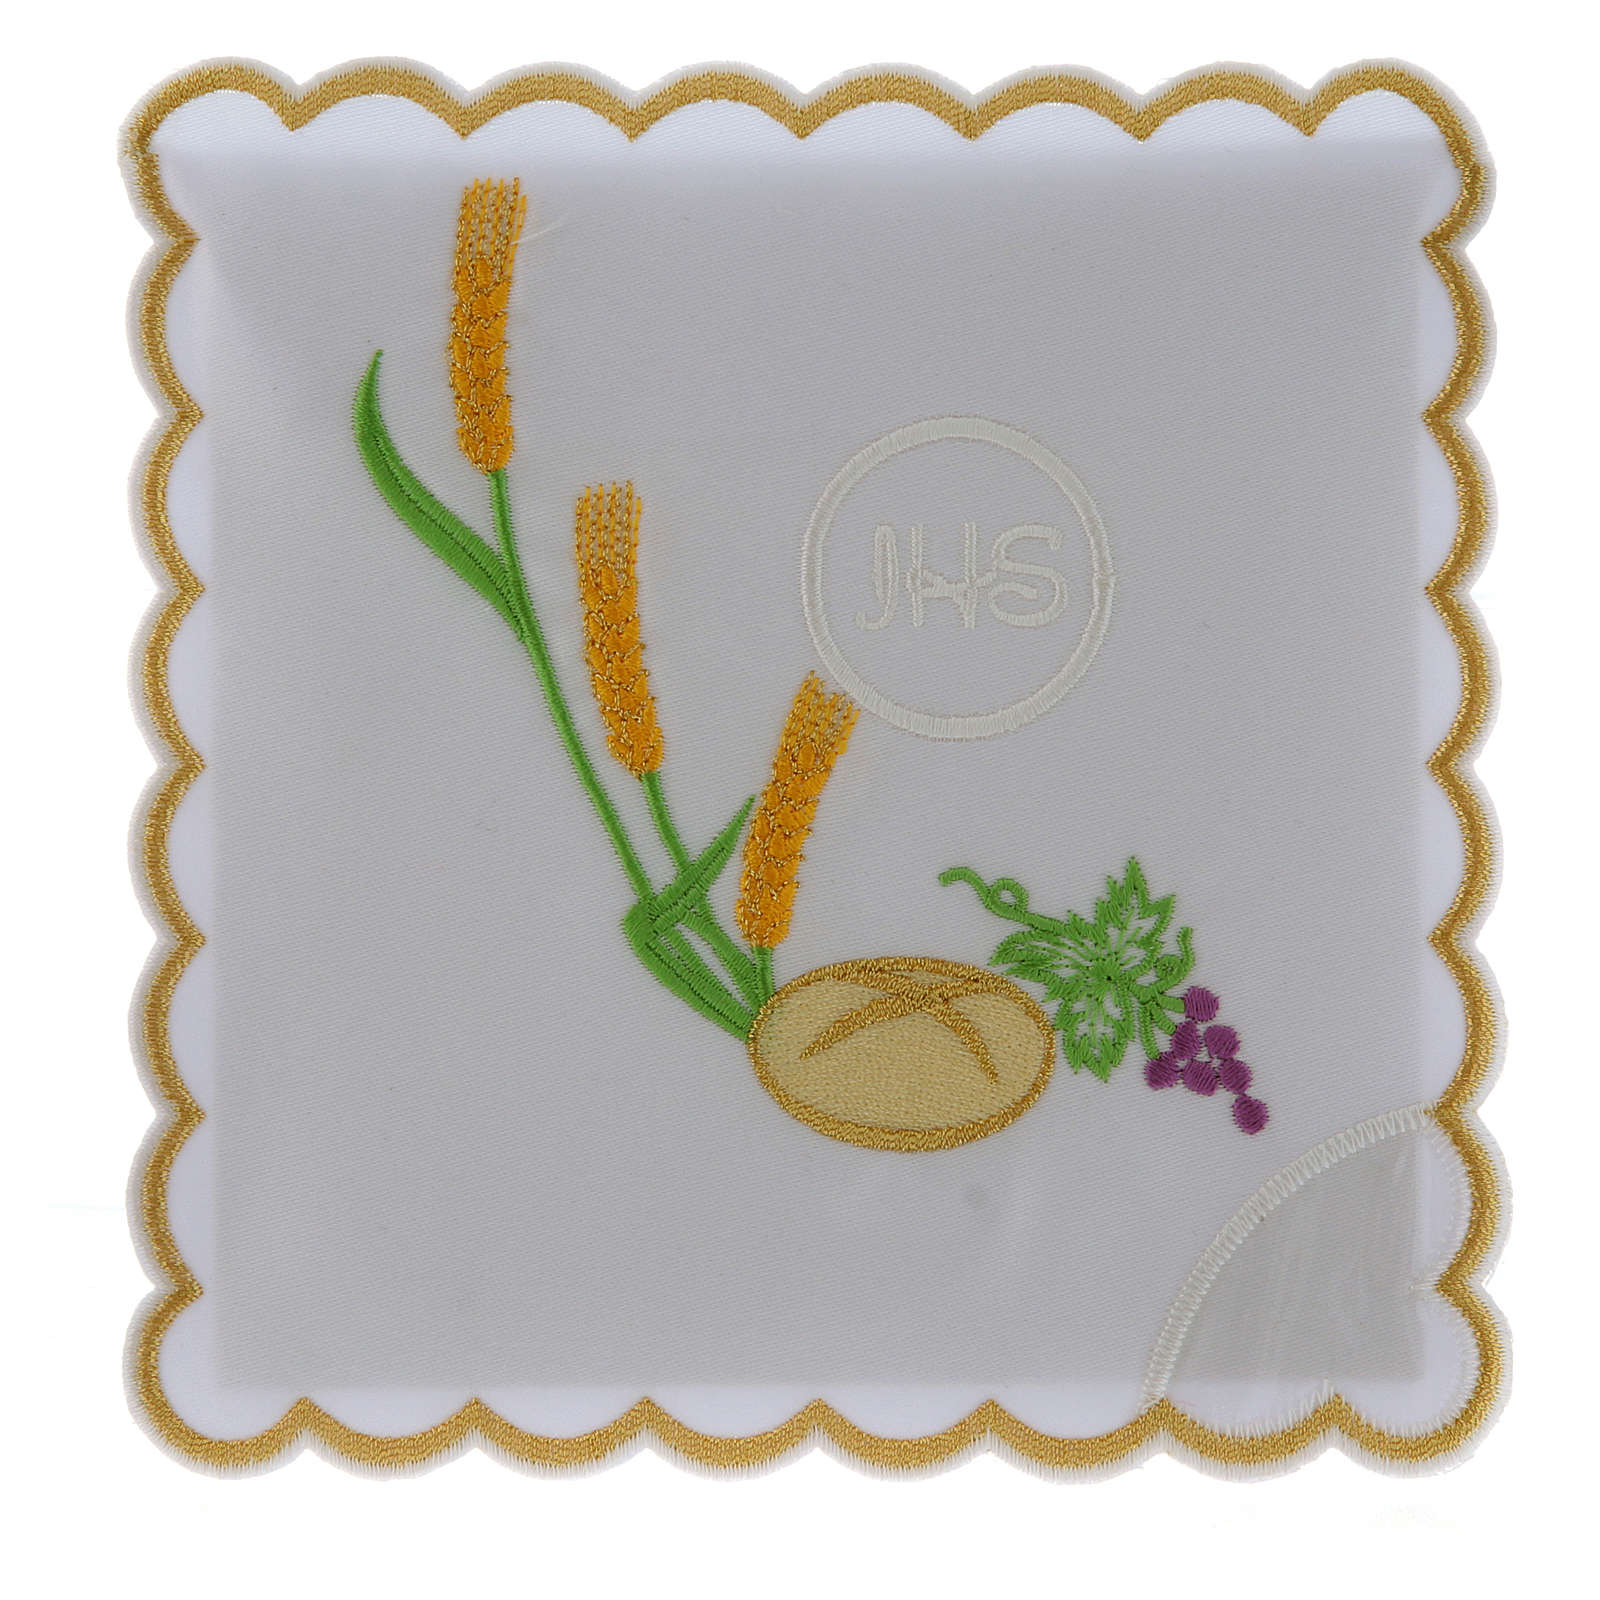 Church linens bread grapes spikes & JHS symbol, cotton 4